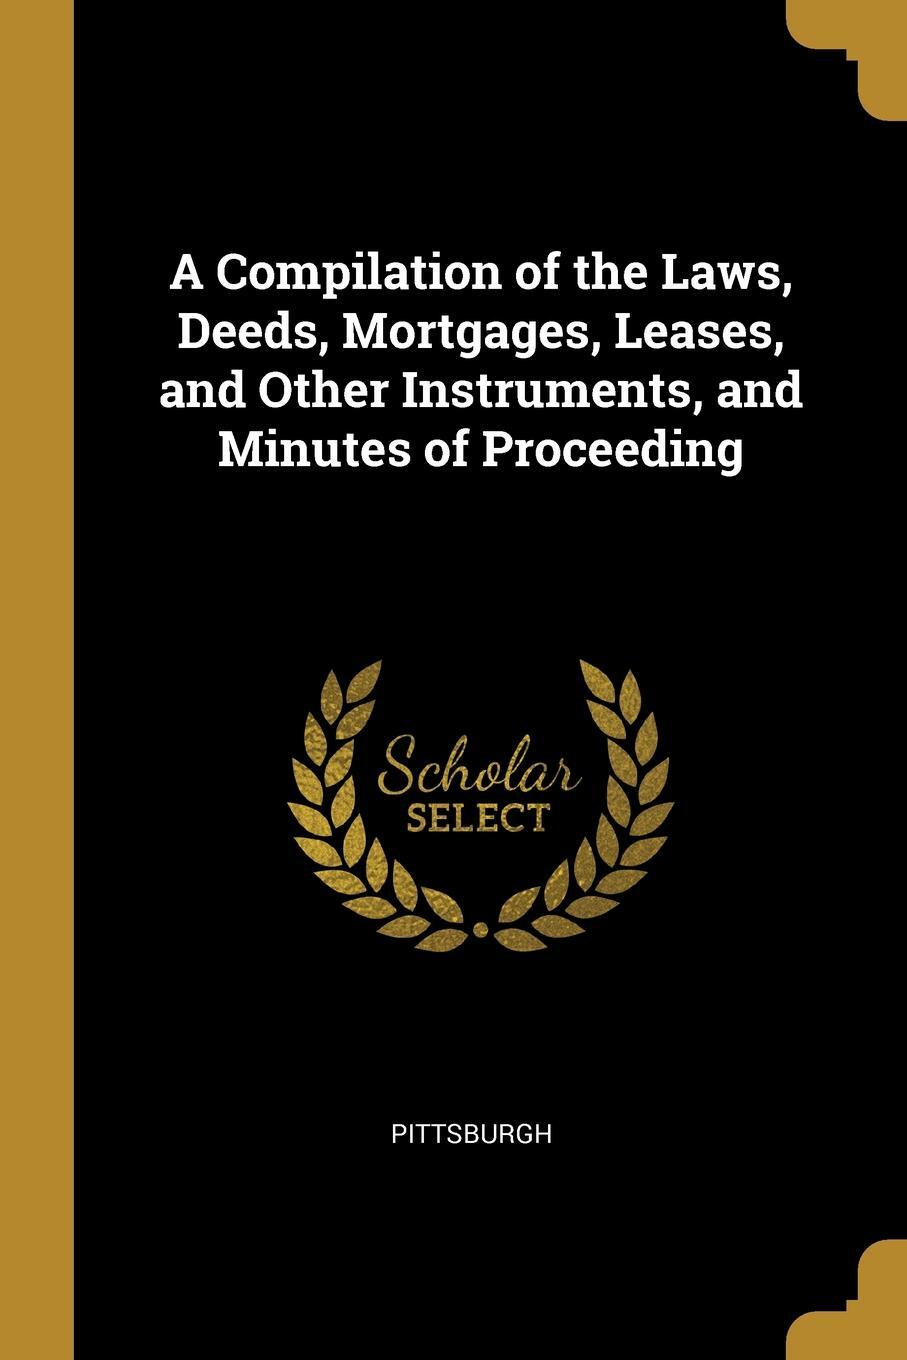 Pittsburgh. A Compilation of the Laws, Deeds, Mortgages, Leases, and Other Instruments, and Minutes of Proceeding